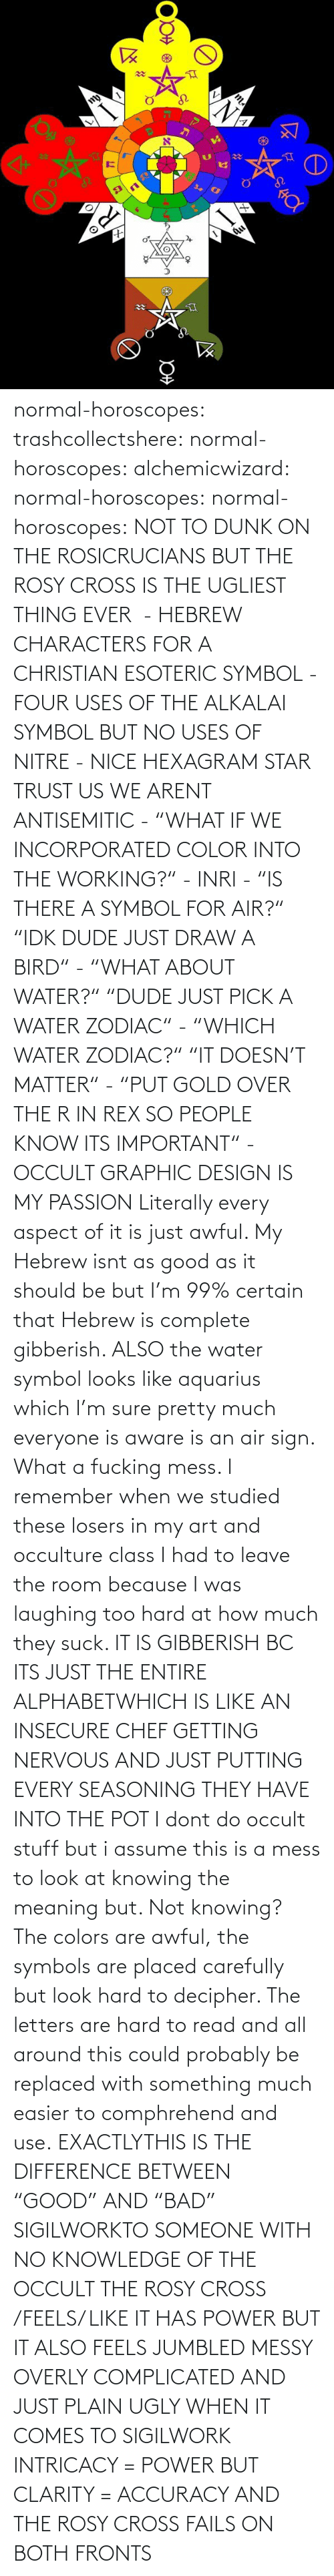 "working: normal-horoscopes:  trashcollectshere: normal-horoscopes:   alchemicwizard:  normal-horoscopes:  normal-horoscopes: NOT TO DUNK ON THE ROSICRUCIANS BUT THE ROSY CROSS IS THE UGLIEST THING EVER  - HEBREW CHARACTERS FOR A CHRISTIAN ESOTERIC SYMBOL - FOUR USES OF THE ALKALAI SYMBOL BUT NO USES OF NITRE - NICE HEXAGRAM STAR TRUST US WE ARENT ANTISEMITIC - ""WHAT IF WE INCORPORATED COLOR INTO THE WORKING?"" - INRI - ""IS THERE A SYMBOL FOR AIR?"" ""IDK DUDE JUST DRAW A BIRD"" - ""WHAT ABOUT WATER?"" ""DUDE JUST PICK A WATER ZODIAC"" - ""WHICH WATER ZODIAC?"" ""IT DOESN'T MATTER"" - ""PUT GOLD OVER THE R IN REX SO PEOPLE KNOW ITS IMPORTANT"" - OCCULT GRAPHIC DESIGN IS MY PASSION  Literally every aspect of it is just awful. My Hebrew isnt as good as it should be but I'm 99% certain that Hebrew is complete gibberish.  ALSO the water symbol looks like aquarius which I'm sure pretty much everyone is aware is an air sign. What a fucking mess.  I remember when we studied these losers in my art and occulture class I had to leave the room because I was laughing too hard at how much they suck.   IT IS GIBBERISH BC ITS JUST THE ENTIRE ALPHABETWHICH IS LIKE AN INSECURE CHEF GETTING NERVOUS AND JUST PUTTING EVERY SEASONING THEY HAVE INTO THE POT     I dont do occult stuff but i assume this is a mess to look at knowing the meaning but. Not knowing? The colors are awful, the symbols are placed carefully but look hard to decipher. The letters are hard to read and all around this could probably be replaced with something much easier to comphrehend and use.  EXACTLYTHIS IS THE DIFFERENCE BETWEEN ""GOOD"" AND ""BAD"" SIGILWORKTO SOMEONE WITH NO KNOWLEDGE OF THE OCCULT THE ROSY CROSS /FEELS/ LIKE IT HAS POWER BUT IT ALSO FEELS JUMBLED MESSY OVERLY COMPLICATED AND JUST PLAIN UGLY WHEN IT COMES TO SIGILWORK INTRICACY = POWER BUT CLARITY = ACCURACY AND THE ROSY CROSS FAILS ON BOTH FRONTS"